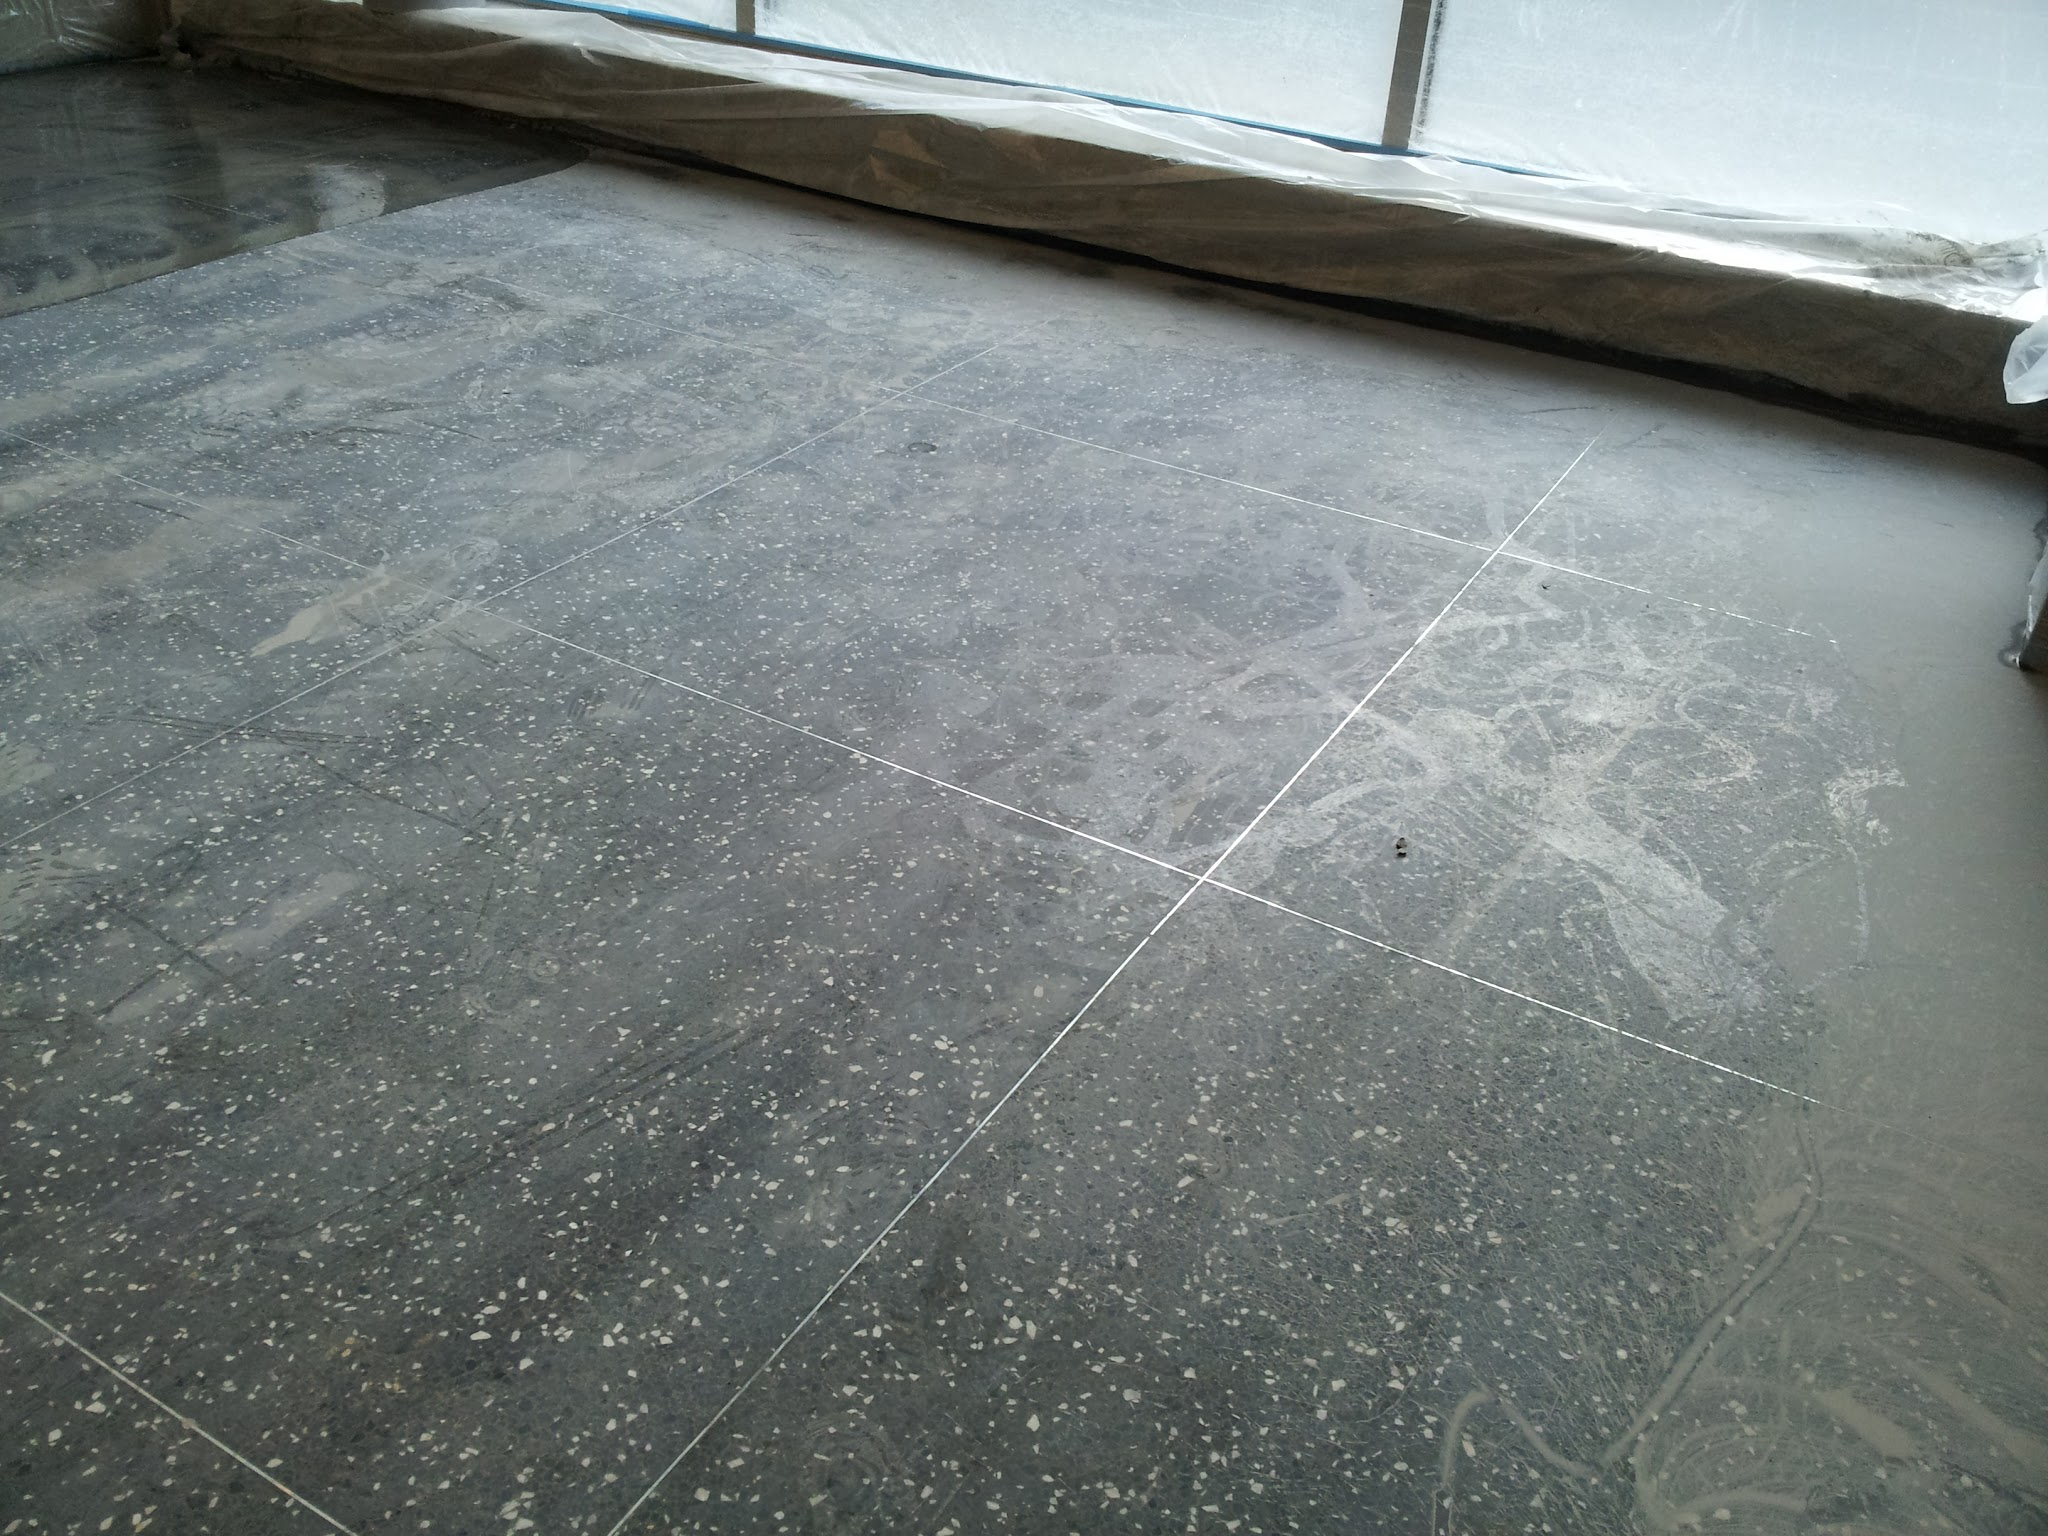 How to clean terrazzo tile floors